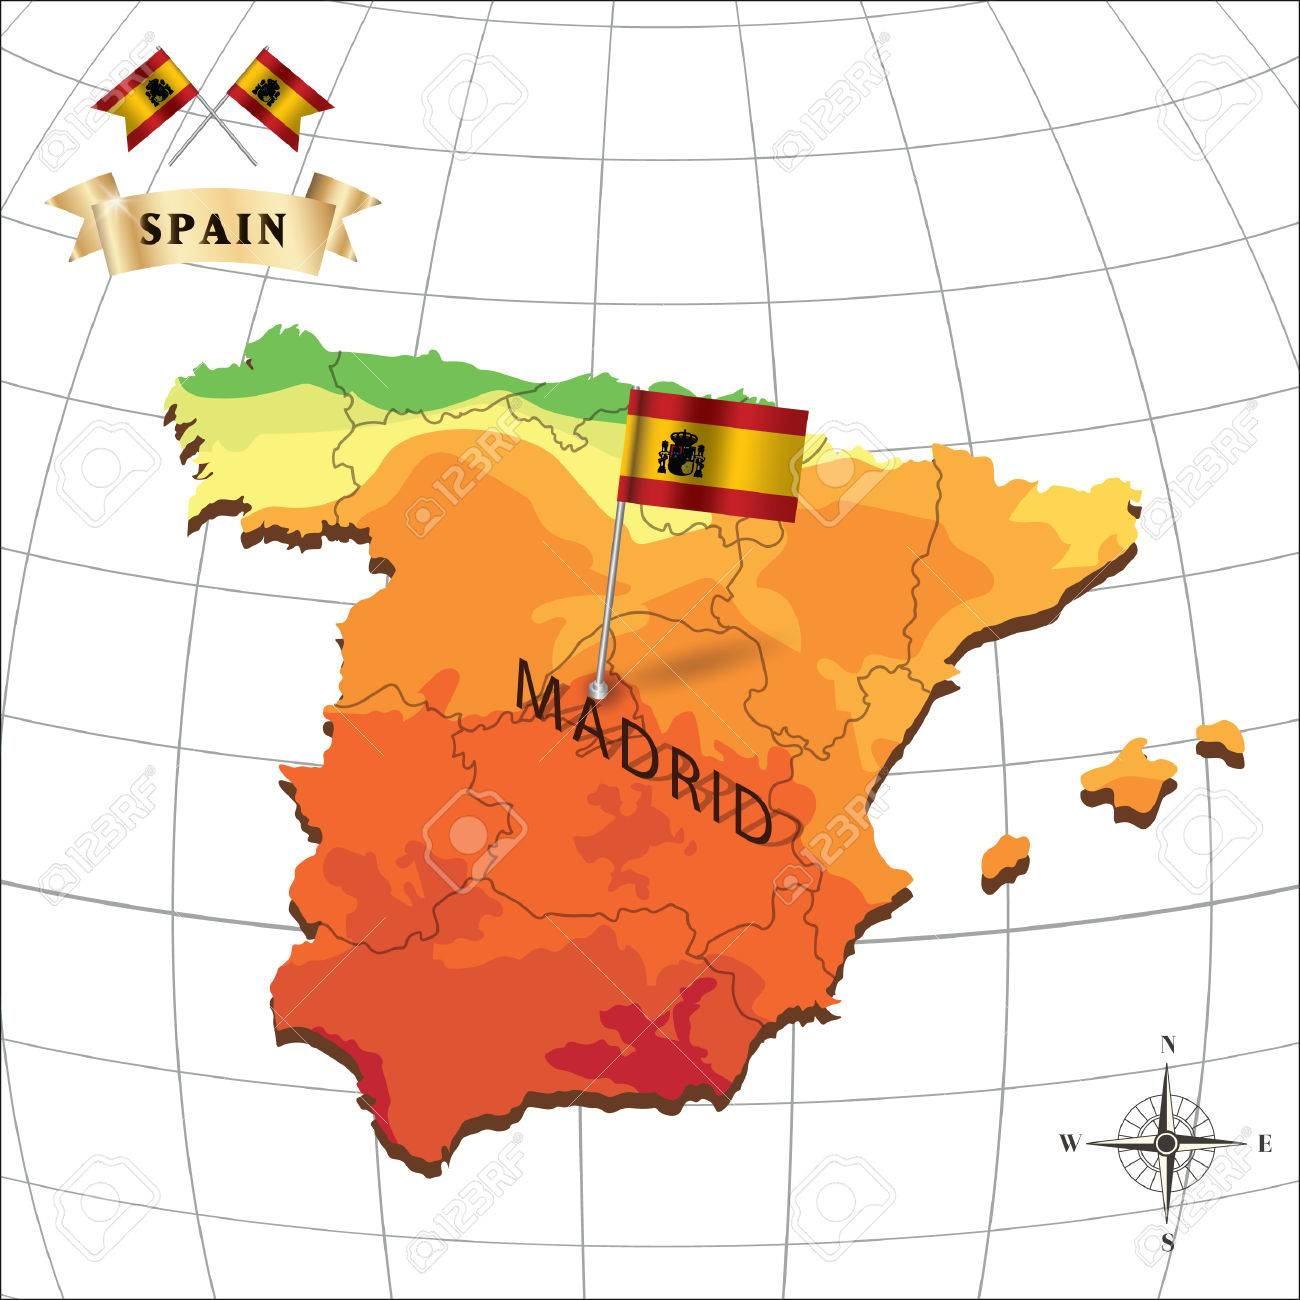 Map Of Spain With Madrid.Map Of Spain With Madrid